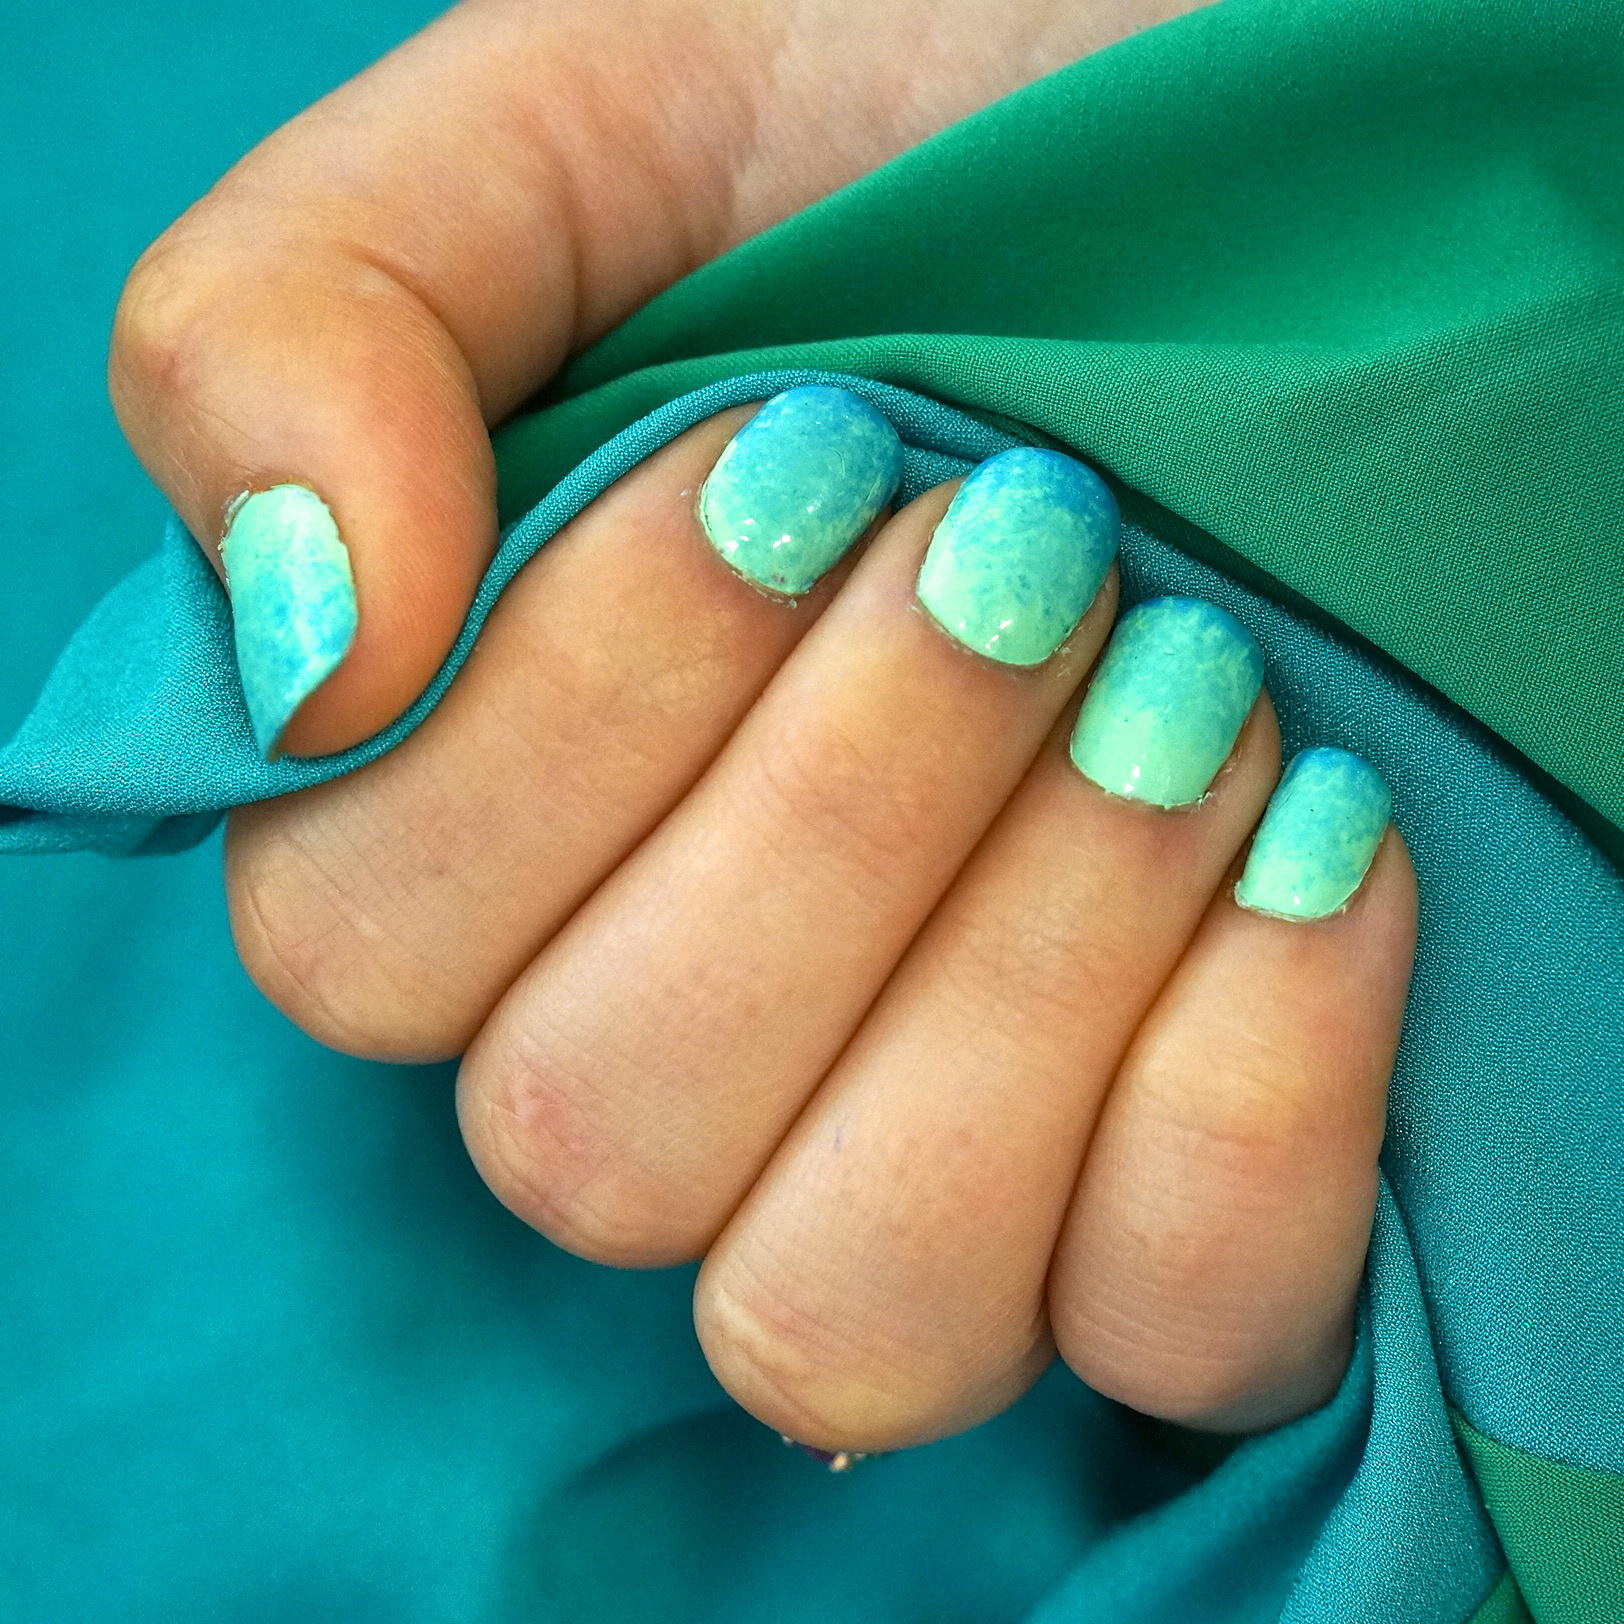 How To Do Ombre Nail Polish: We're Calling Shenanigans